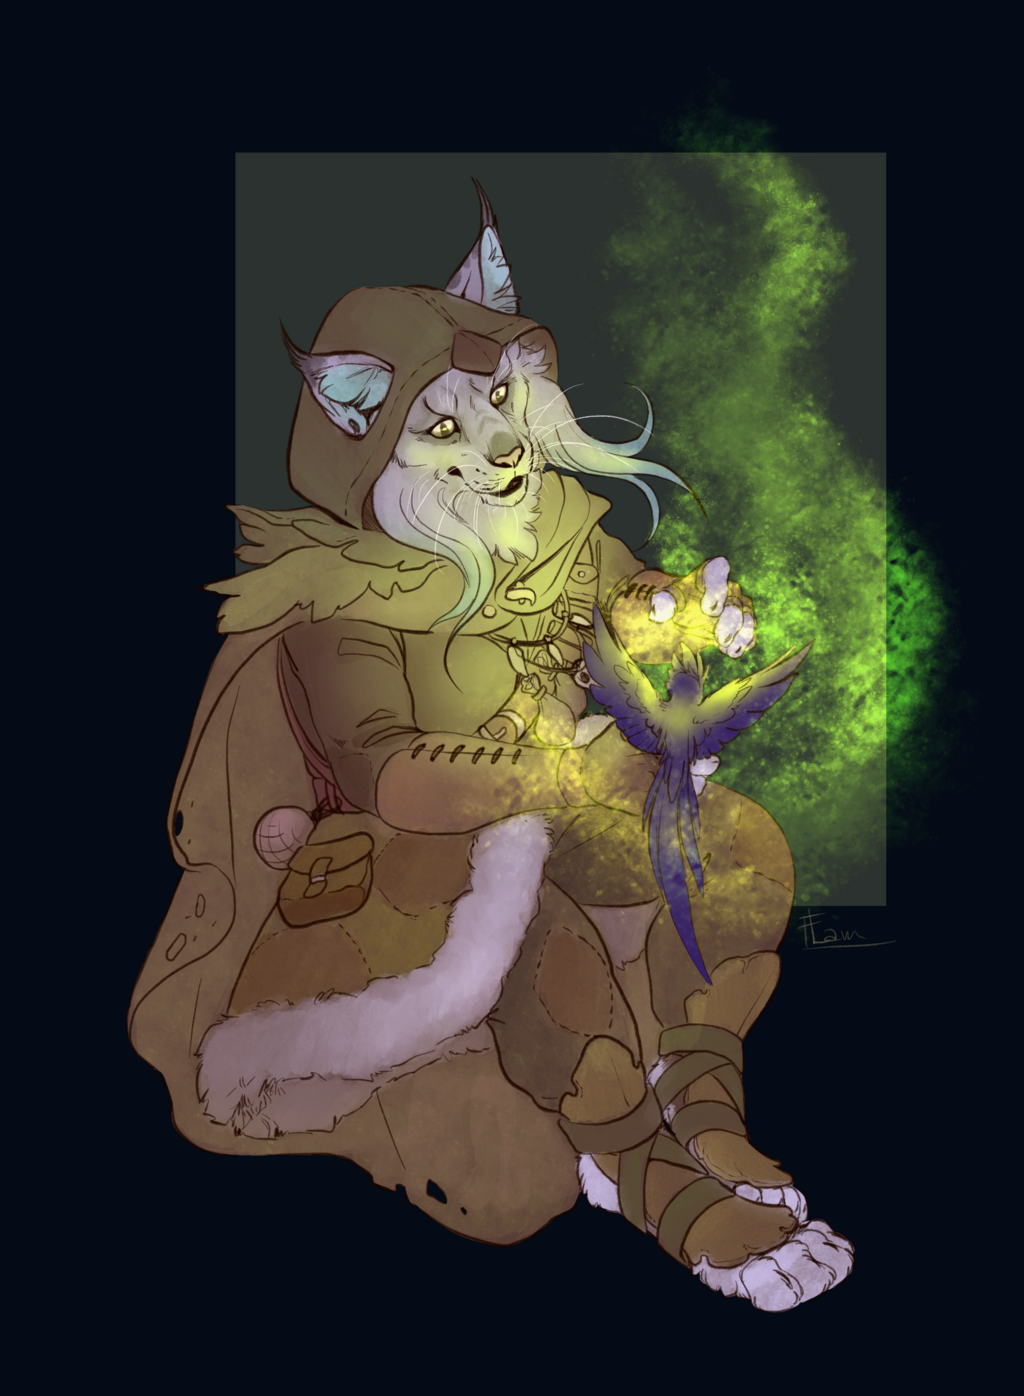 Most recent image: Forest Witch